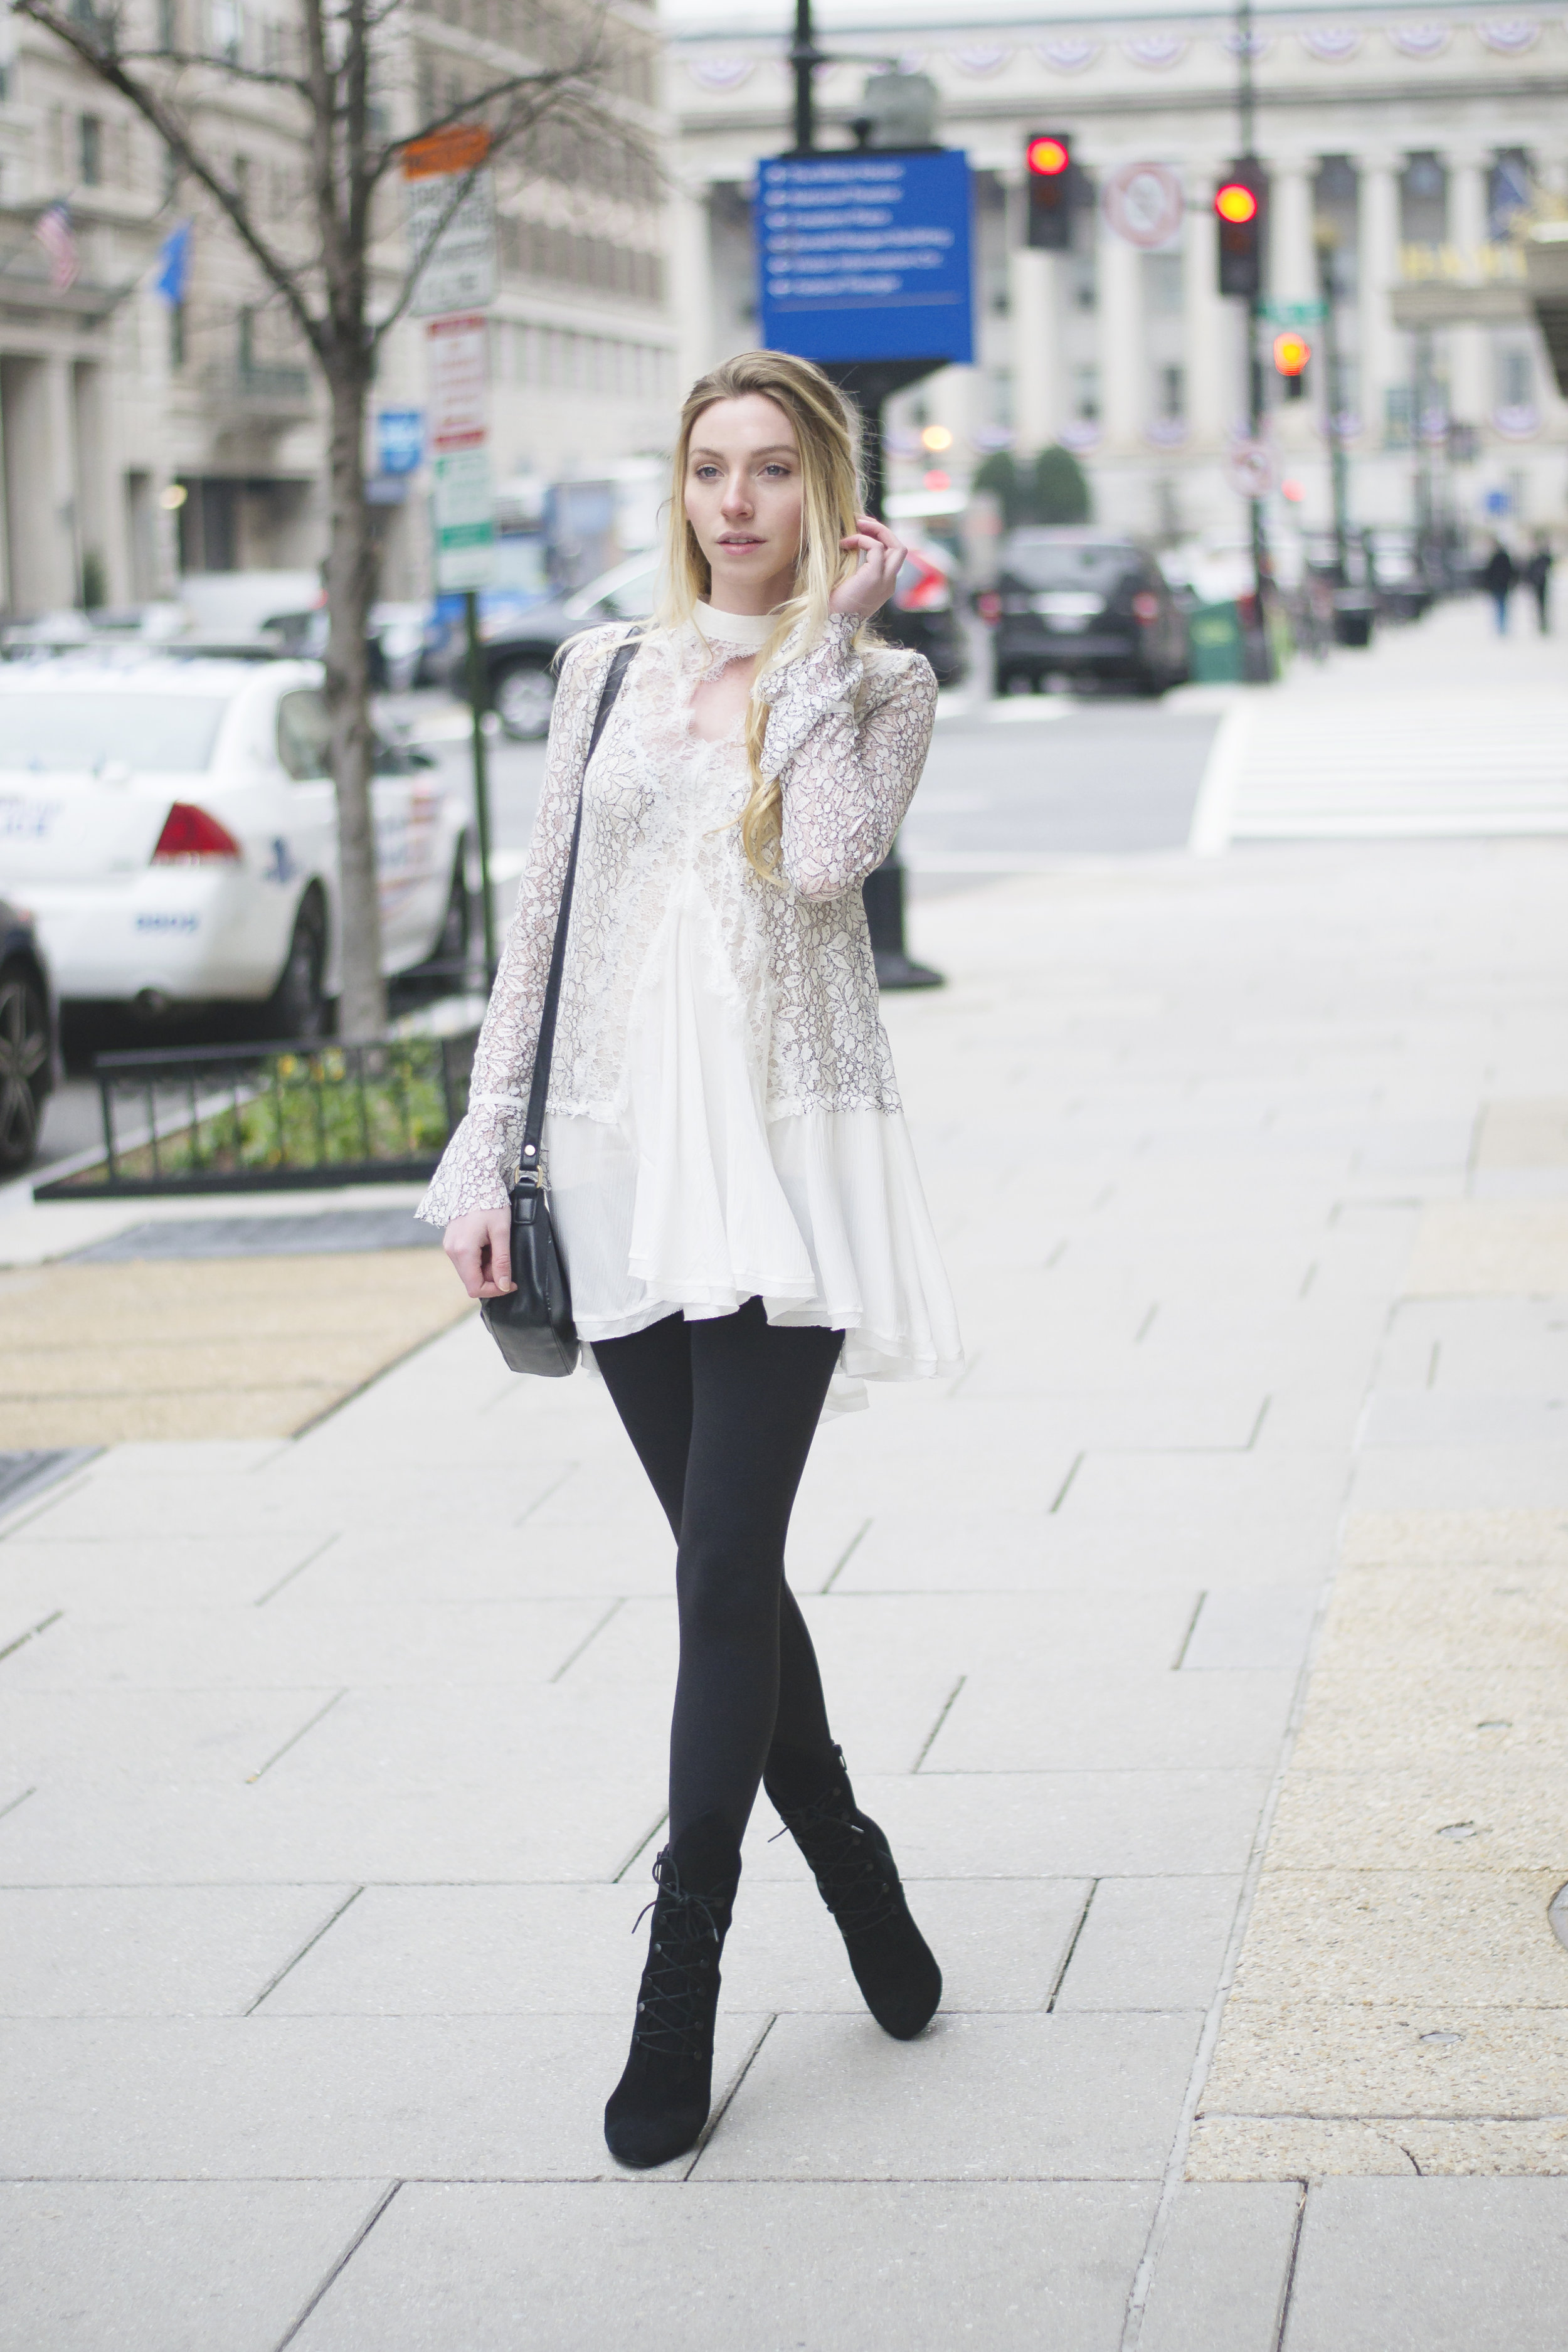 White Lace Winter Style